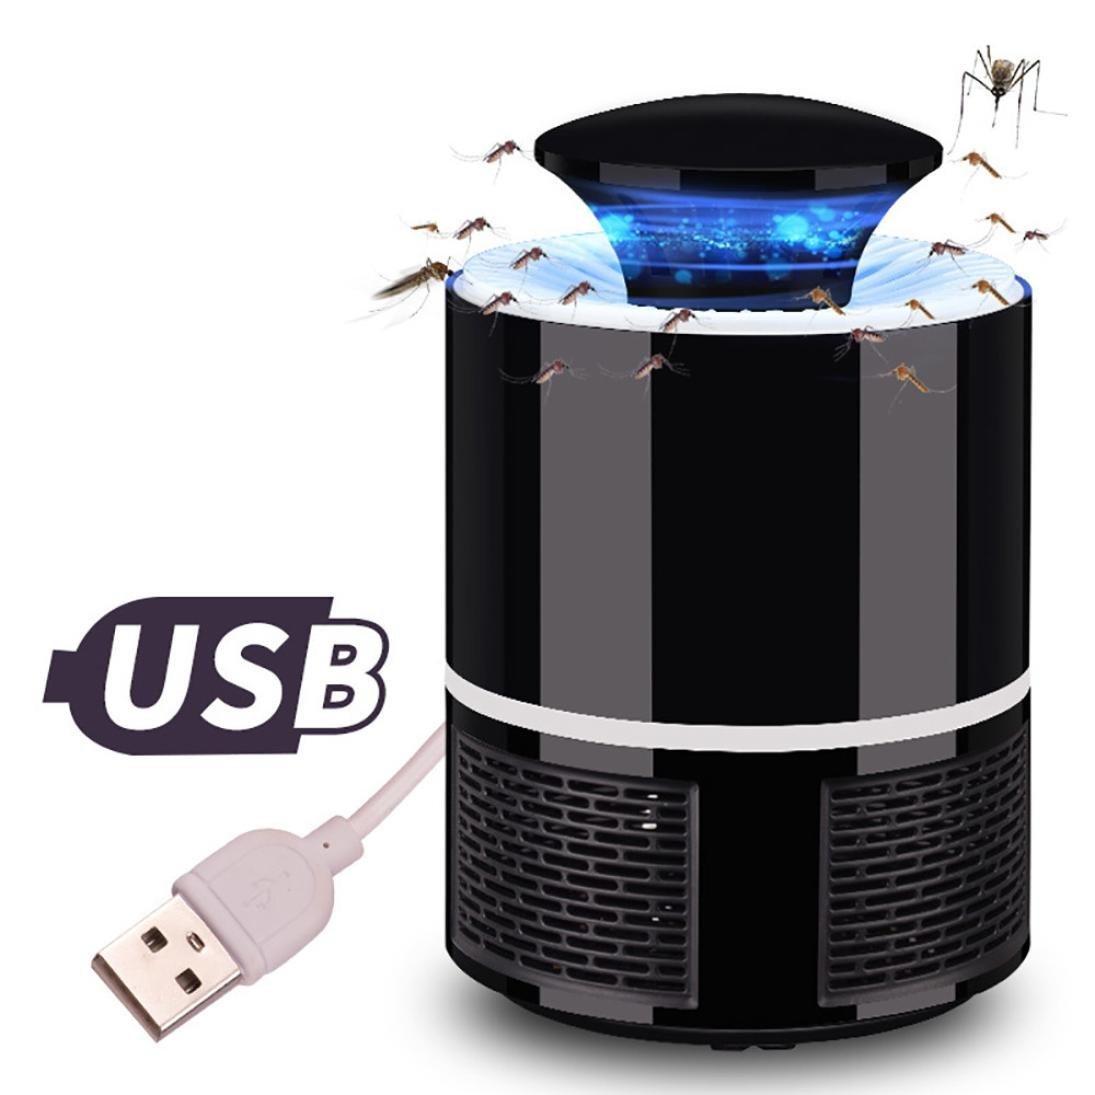 Sonmer USB Electric Fly Bug Mosquito Killer(7.5x5.1x5.1inch) LED Trap Light (Black)